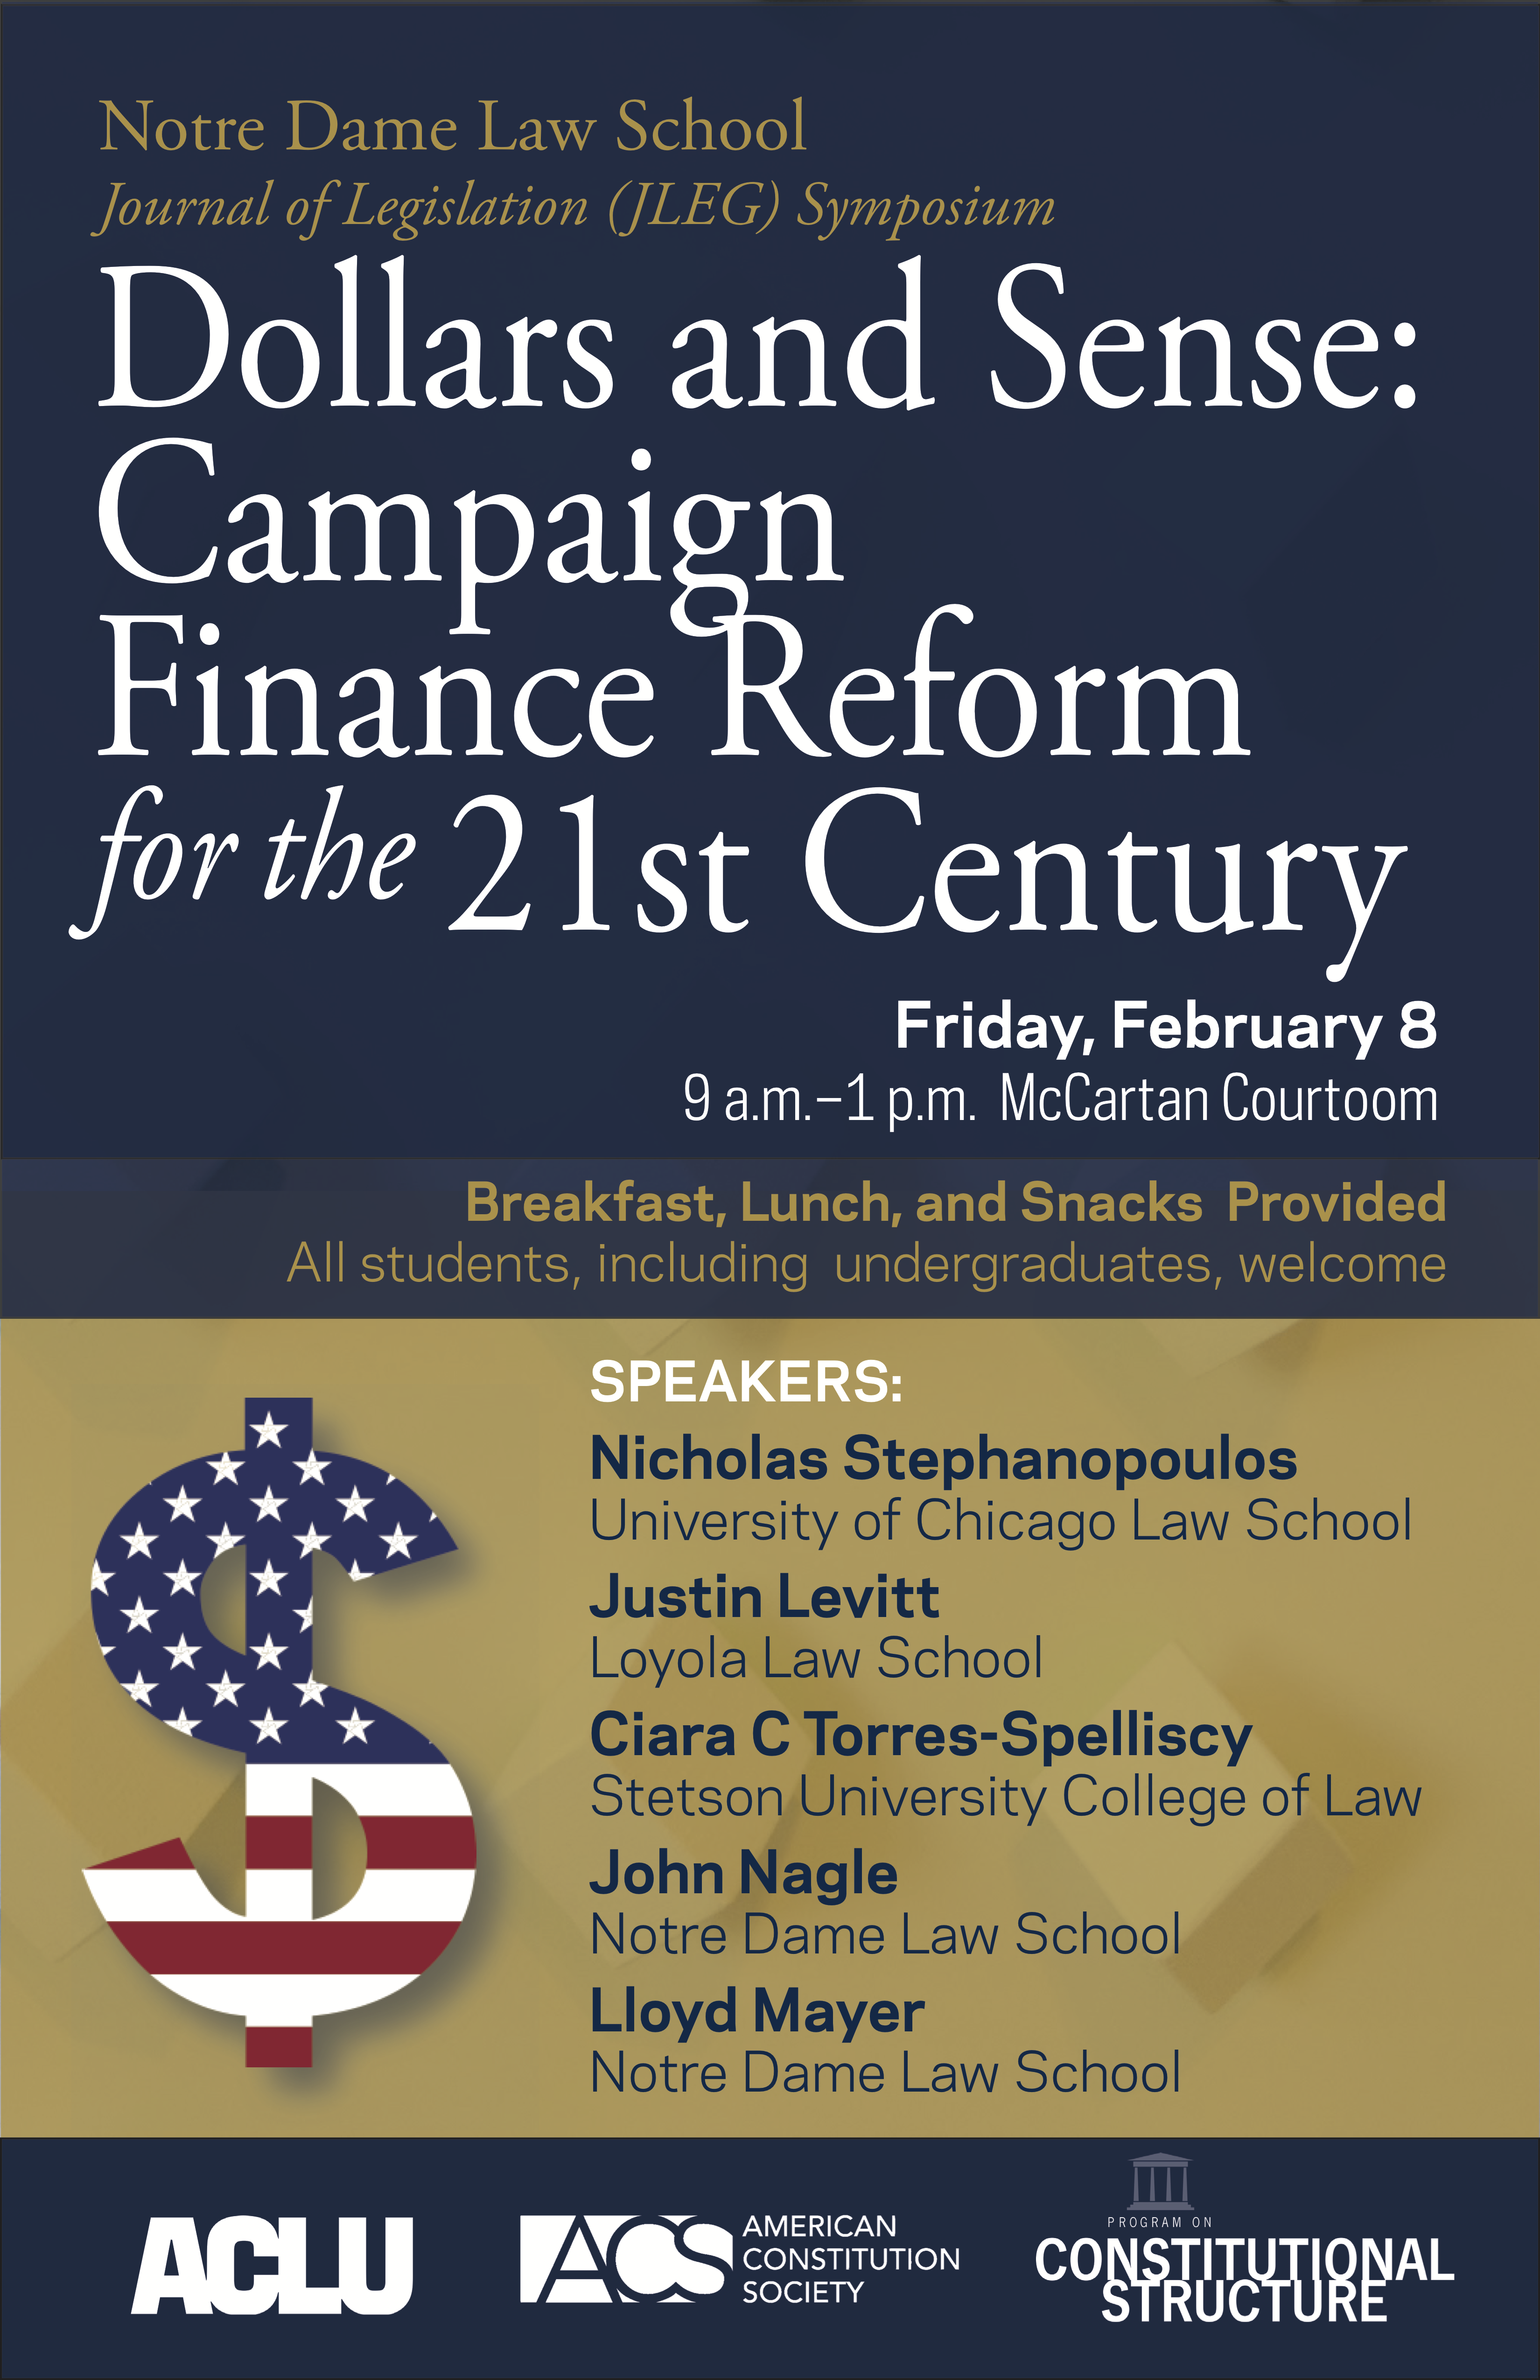 2019 - Dollars and Sense: Campaign Finance Reform for the 21st Century